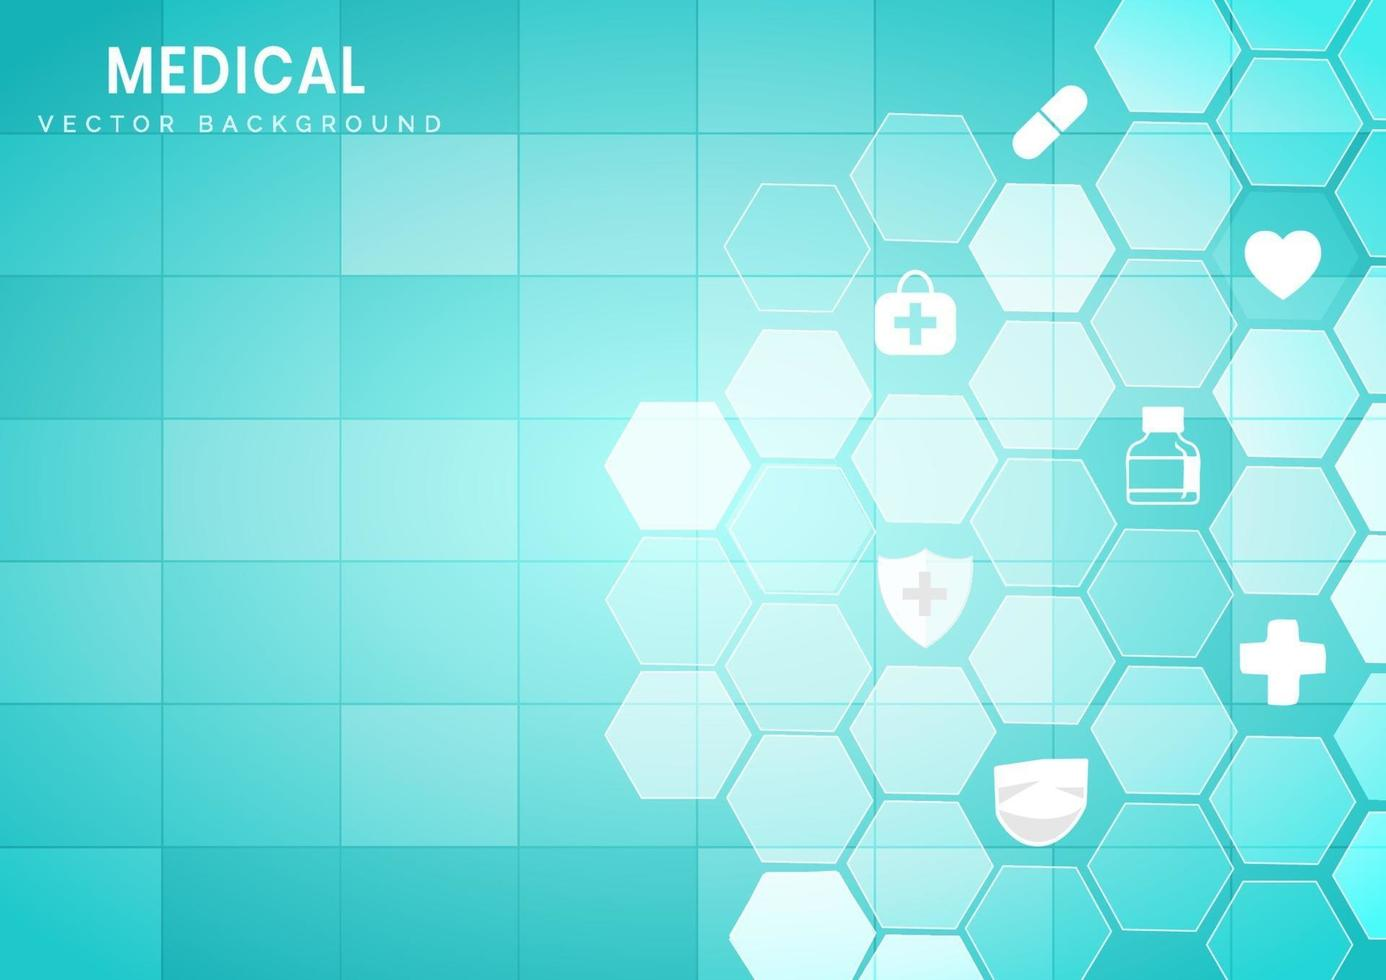 Abstract blue hexagon pattern background.Medical and science concept and health care icon pattern. vector